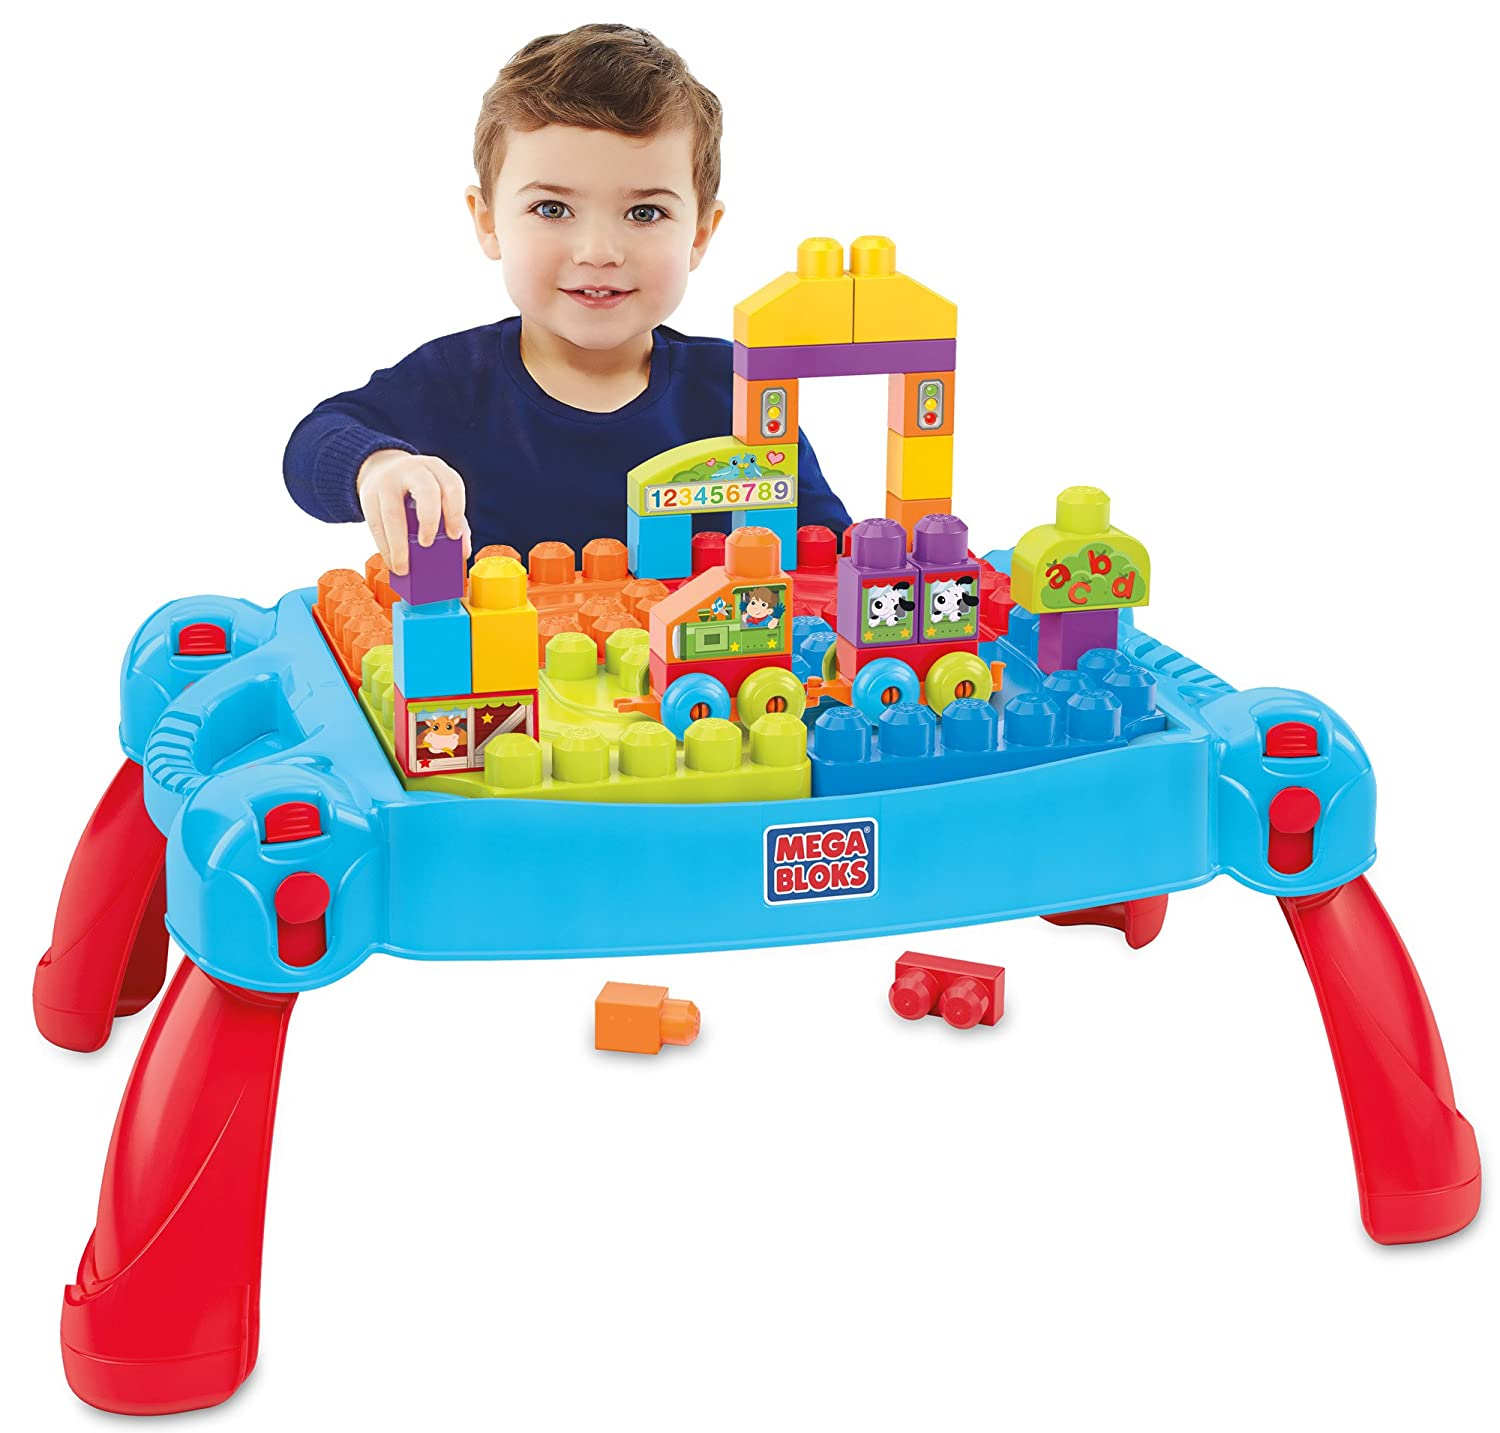 Best Gifts and Toys for 1 Year Old Boys Favorite Top Gifts